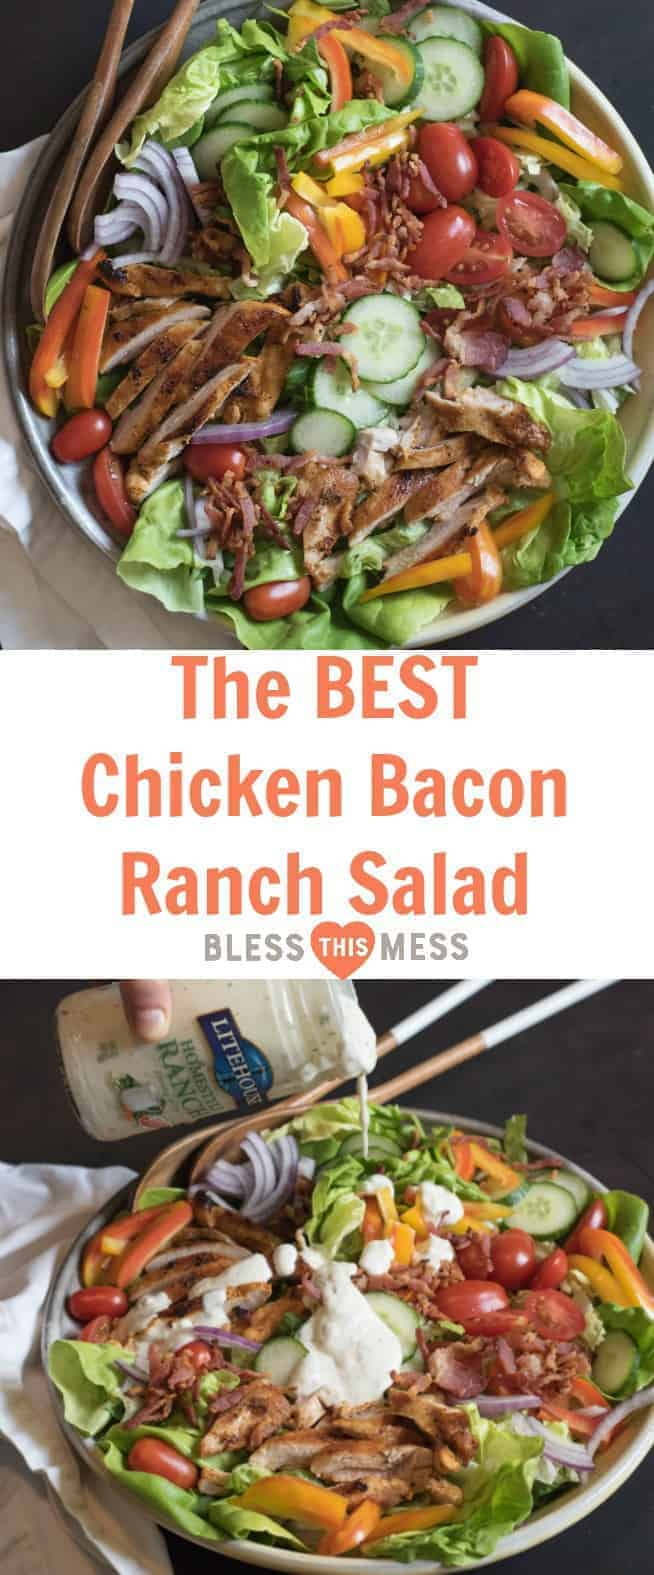 The BEST Chicken Bacon Ranch Salad of summer is a main dish green salad topped with all of your favorite things such as pan seared chicken, bacon, tomatoes, cucumber, and plenty of ranch dressing!